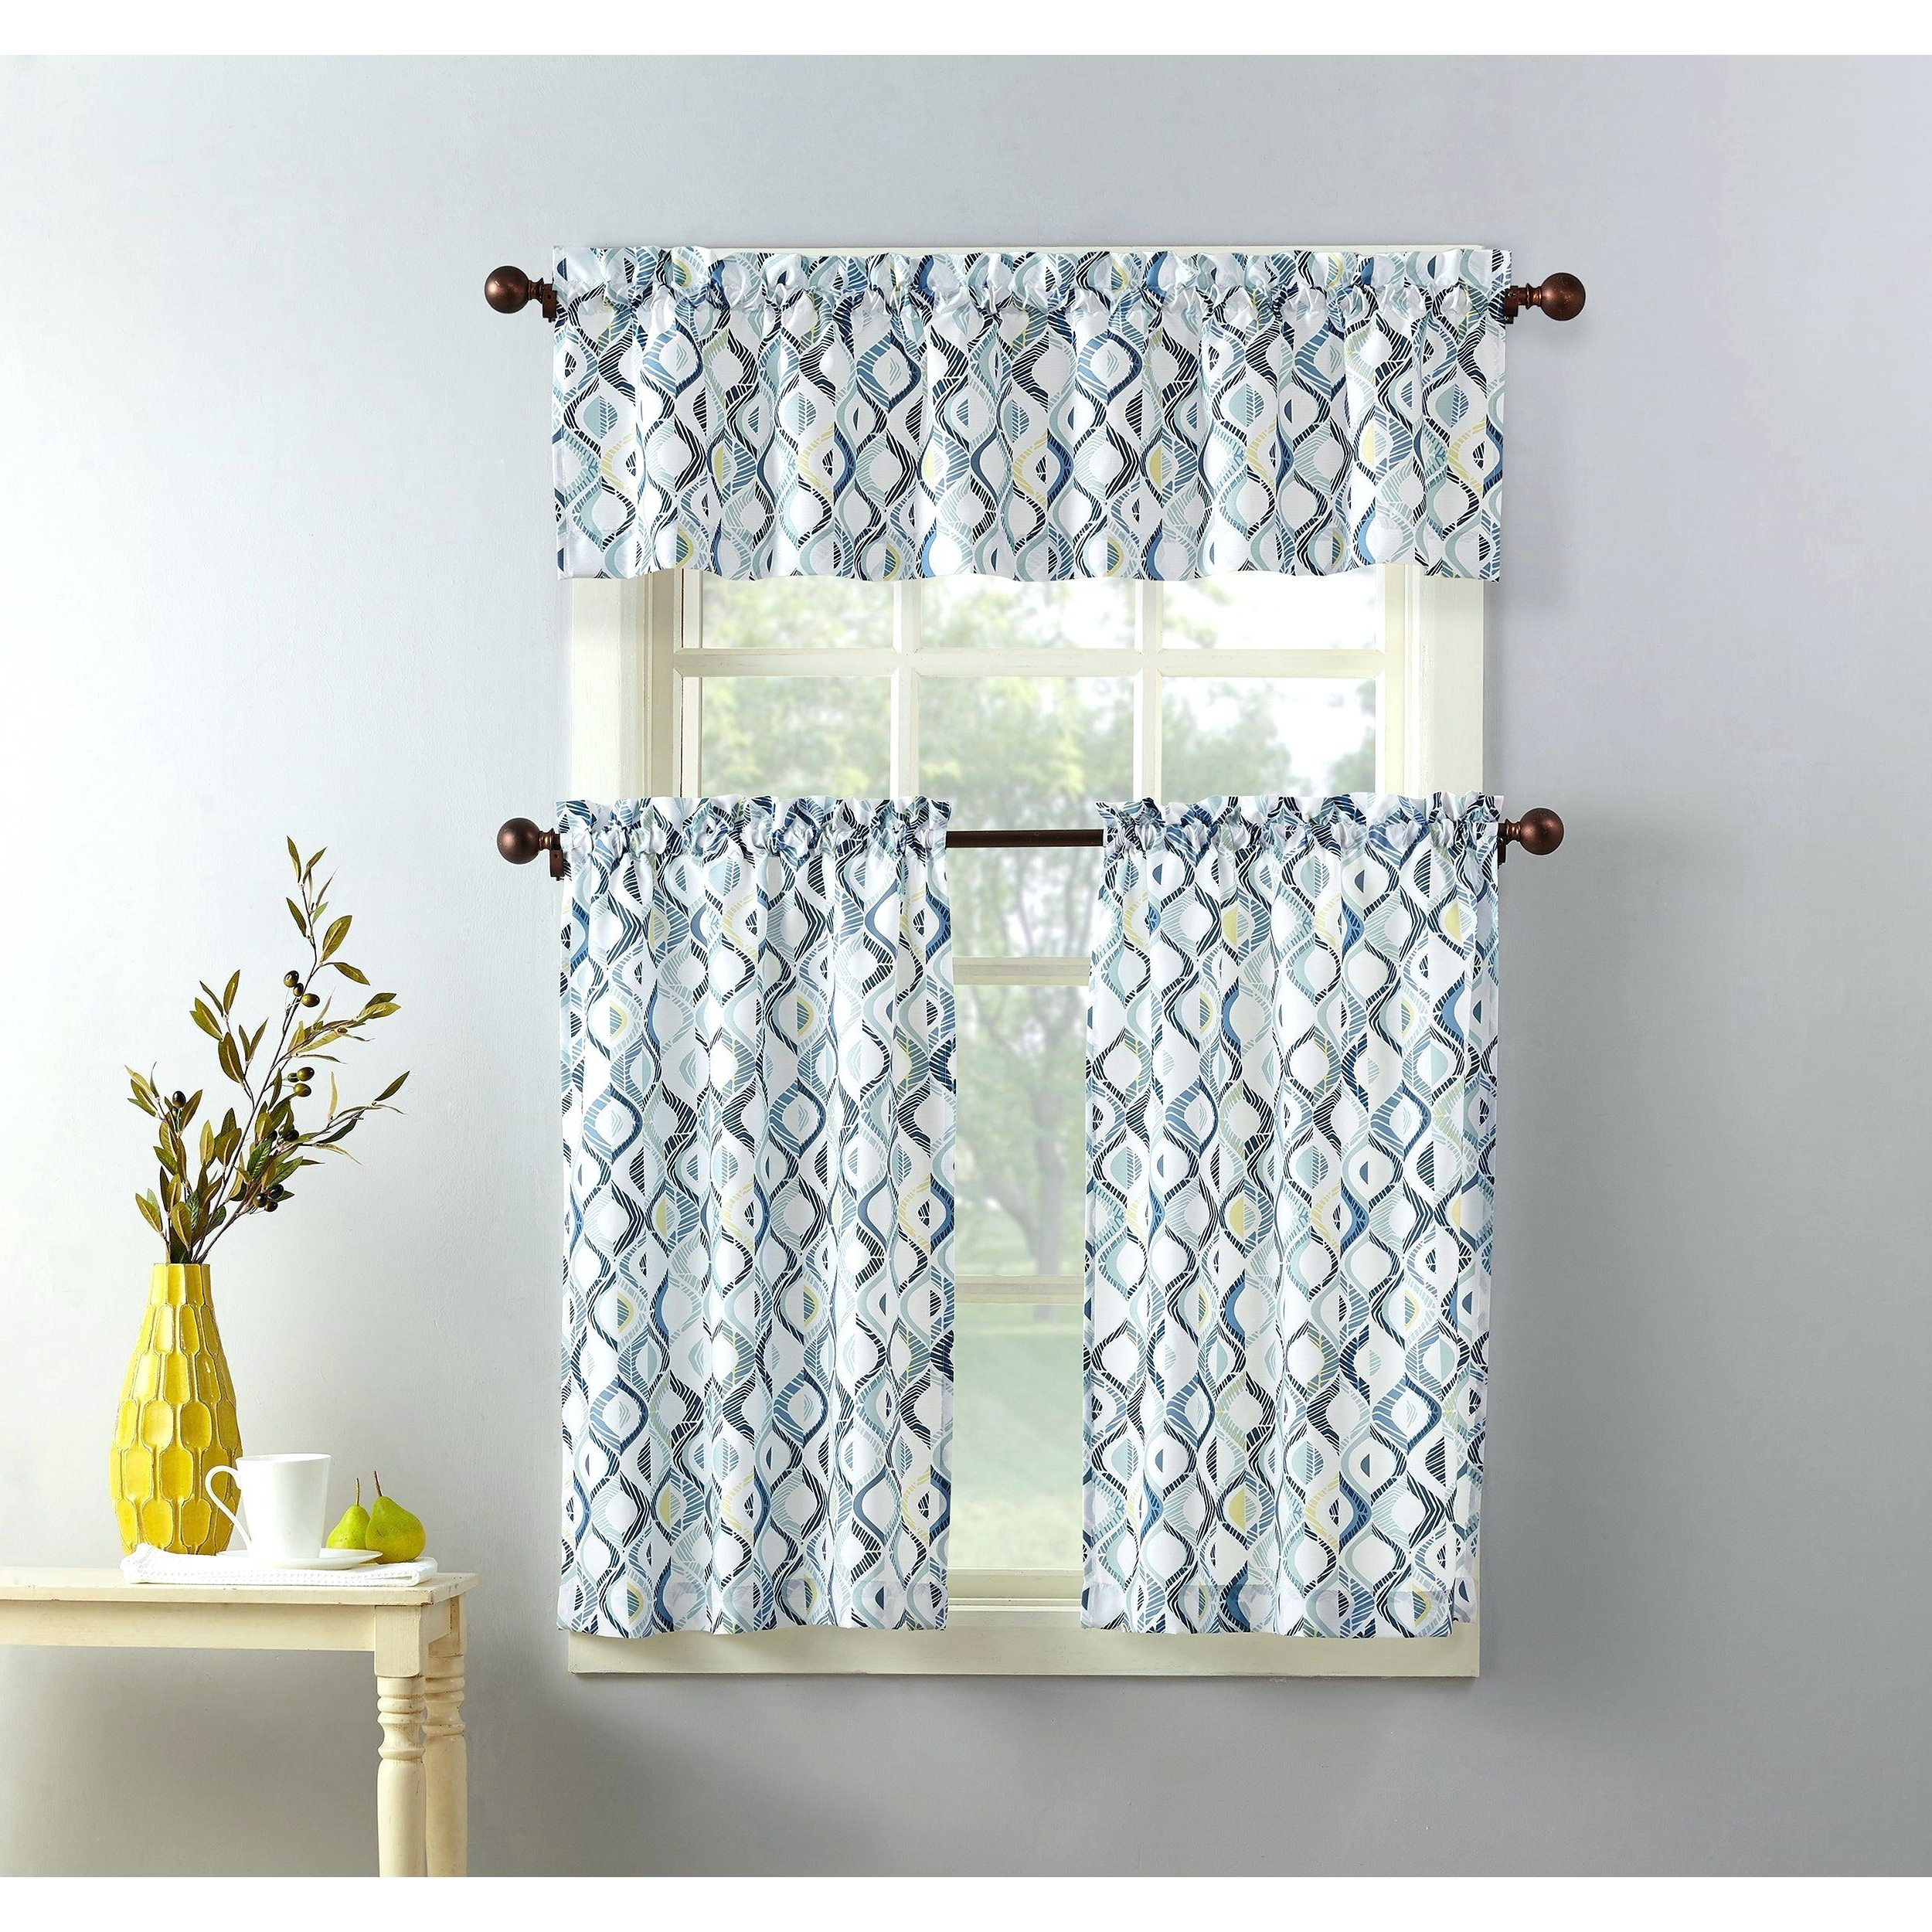 Most Up To Date Curtain Sets With Valance – Onsaturn.co Intended For Grey Window Curtain Tier And Valance Sets (Gallery 19 of 20)